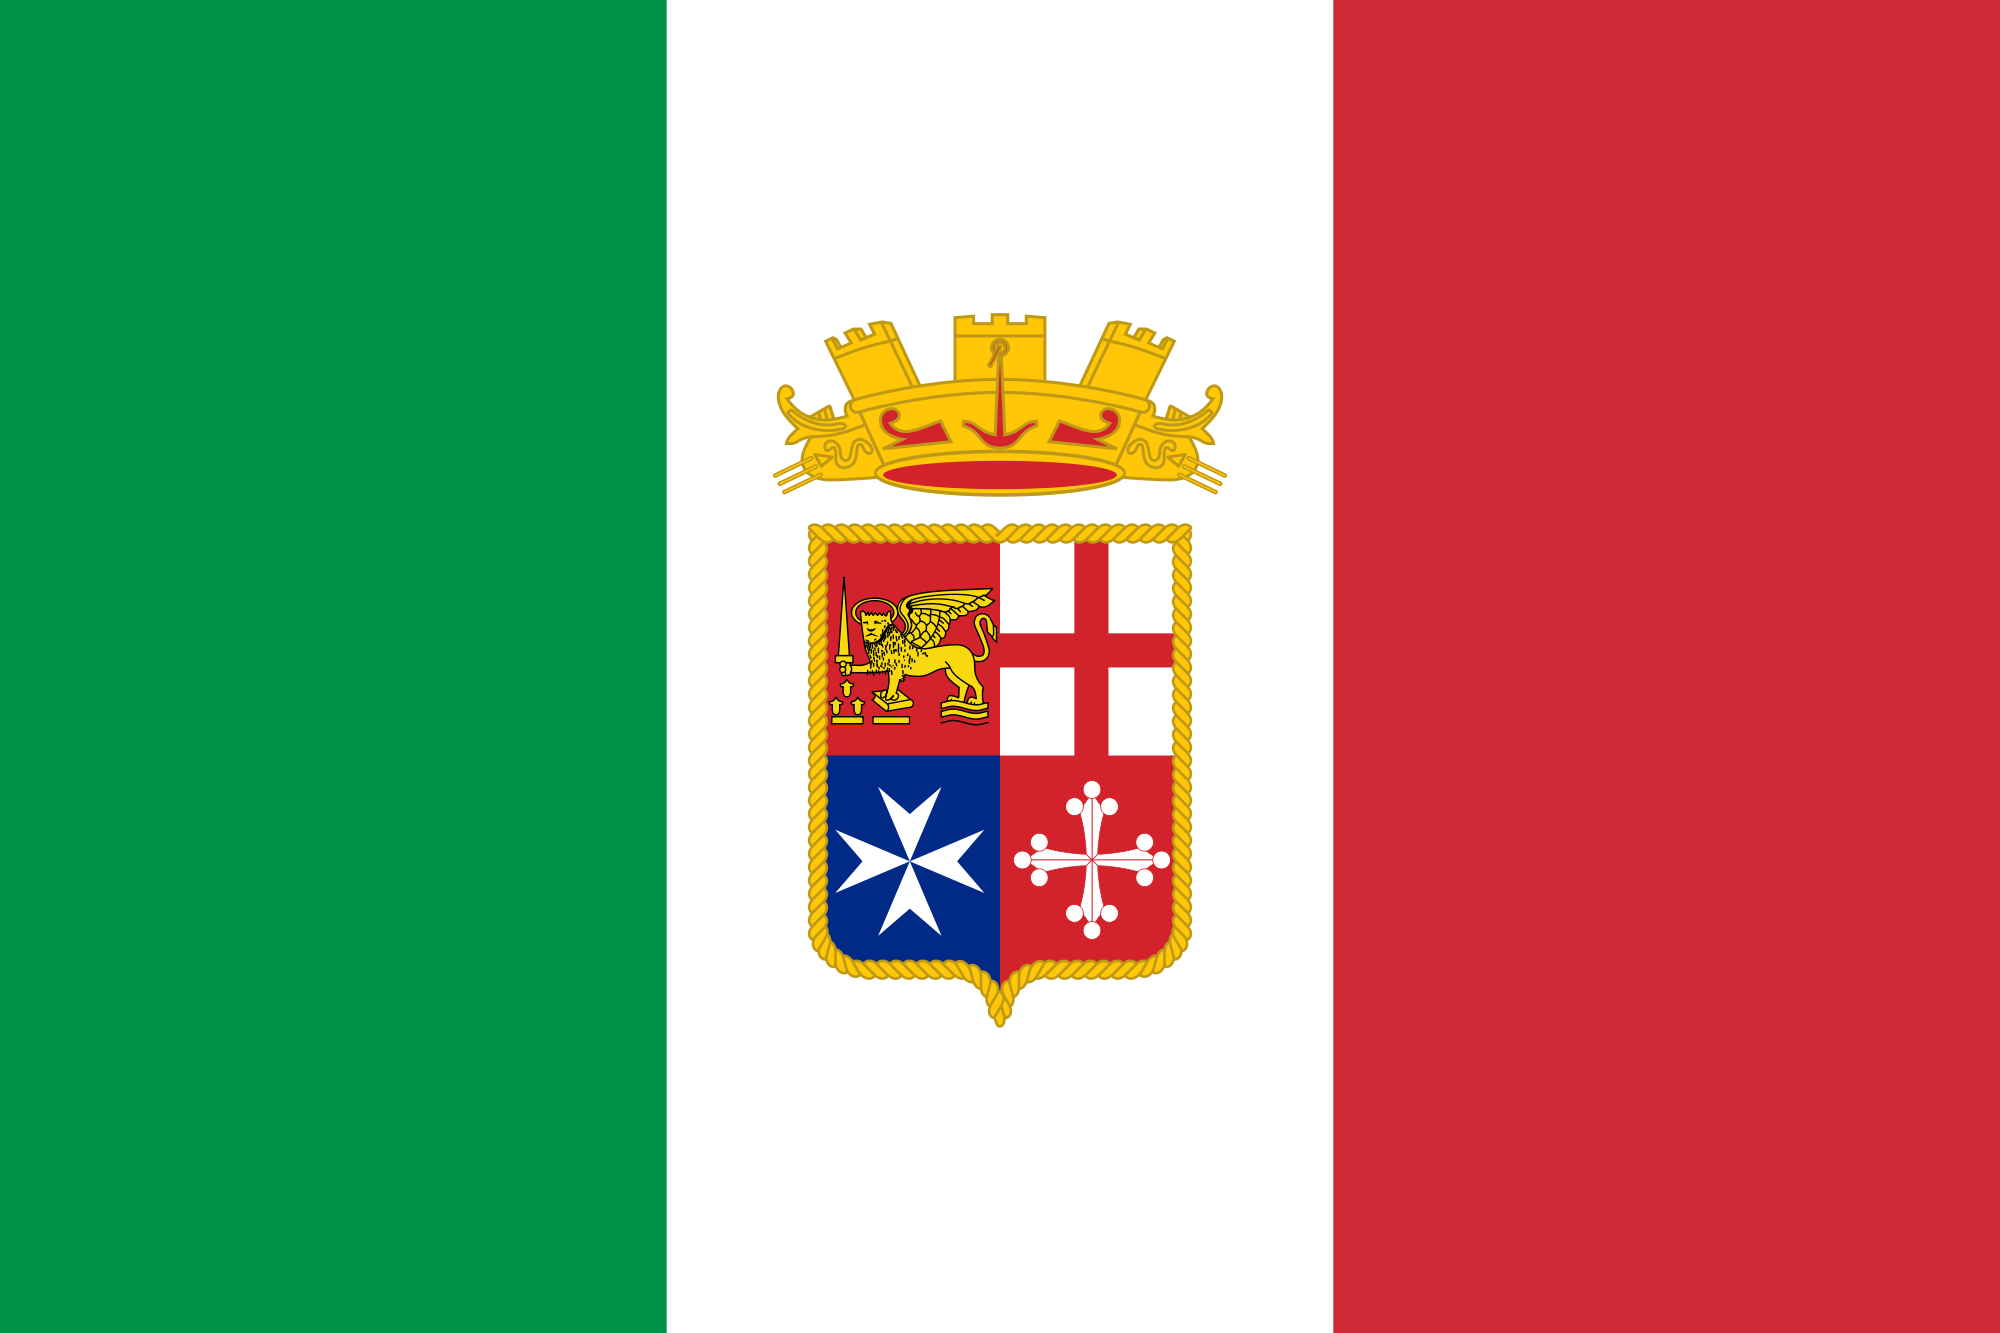 Flag of Italy (Naval ensign)